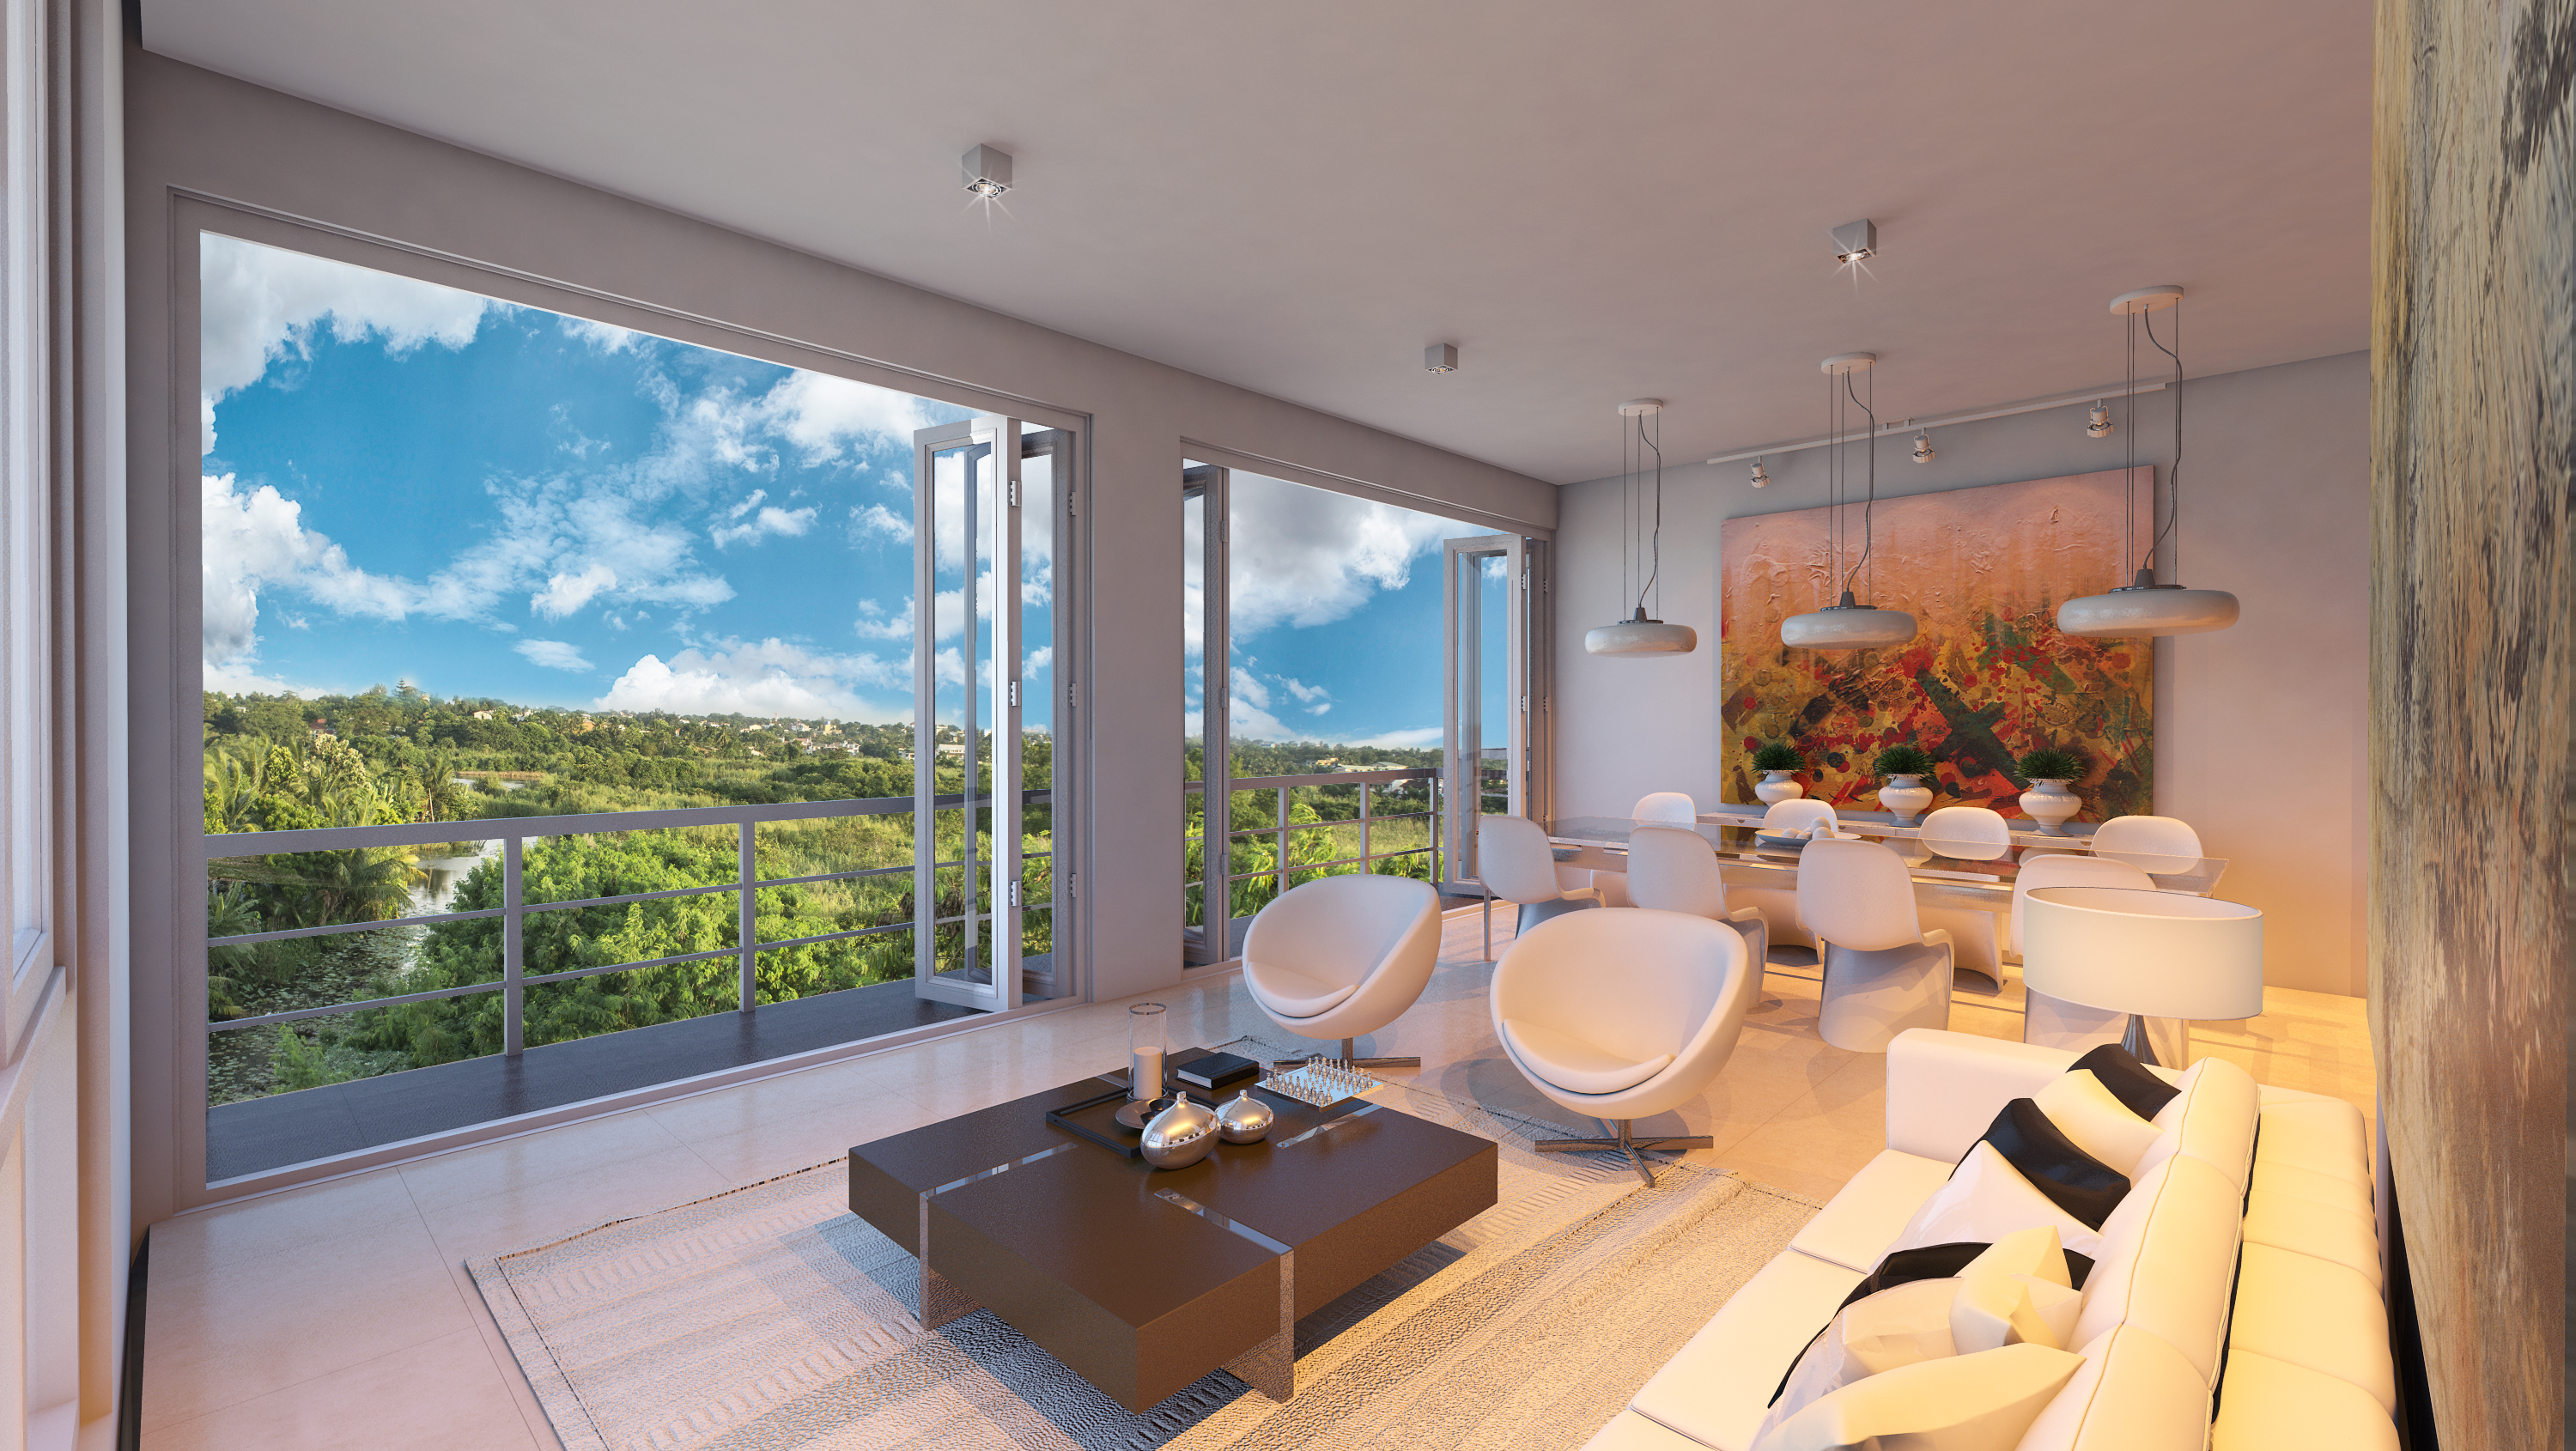 The Tranquility – Hottest Deal in Town!